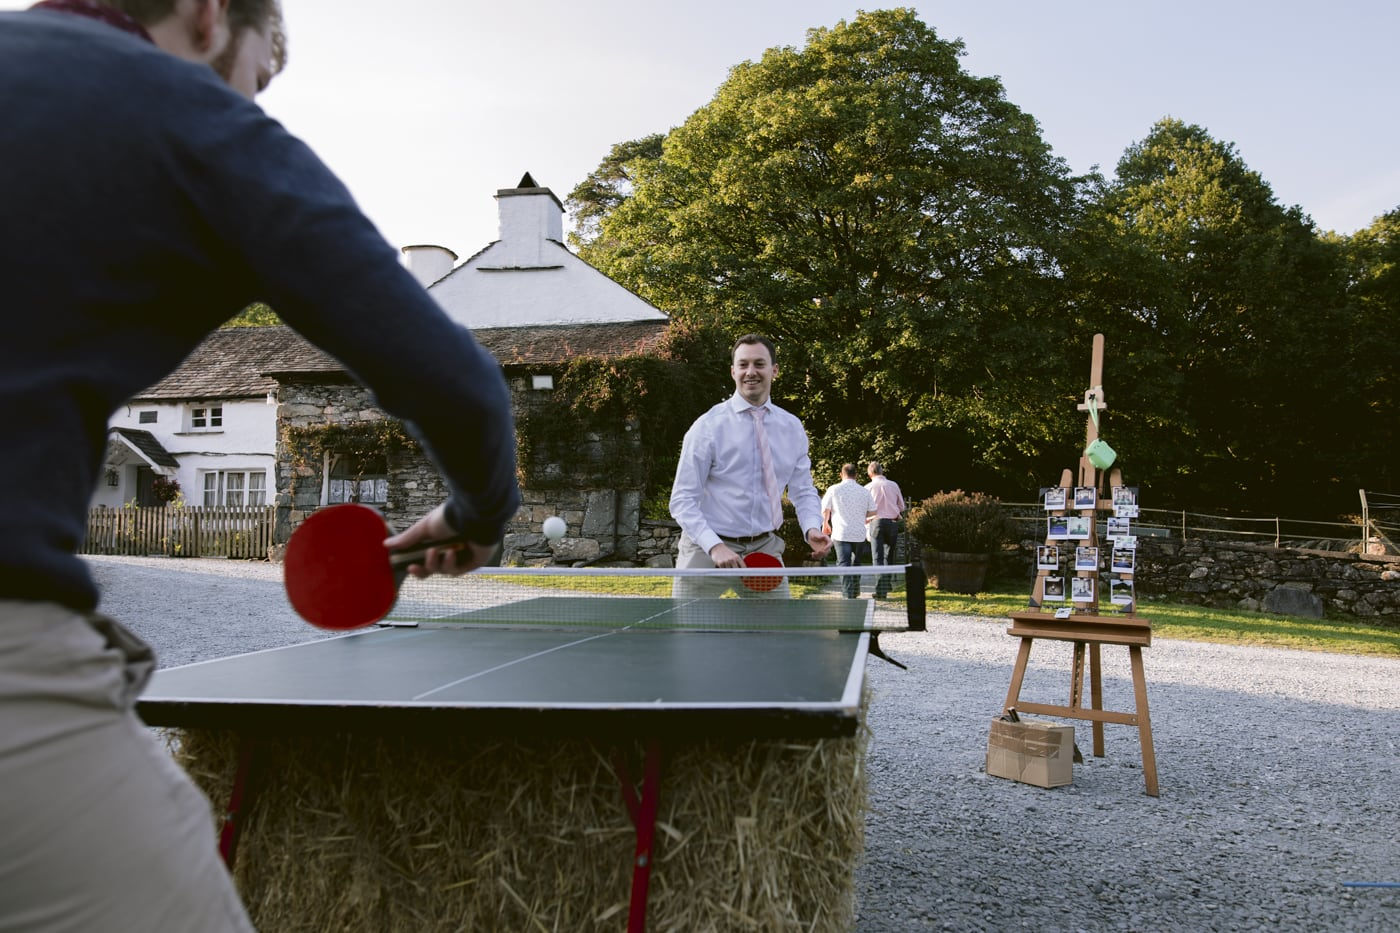 Guests outside Portrait Shot Playing Table Tennis Outside